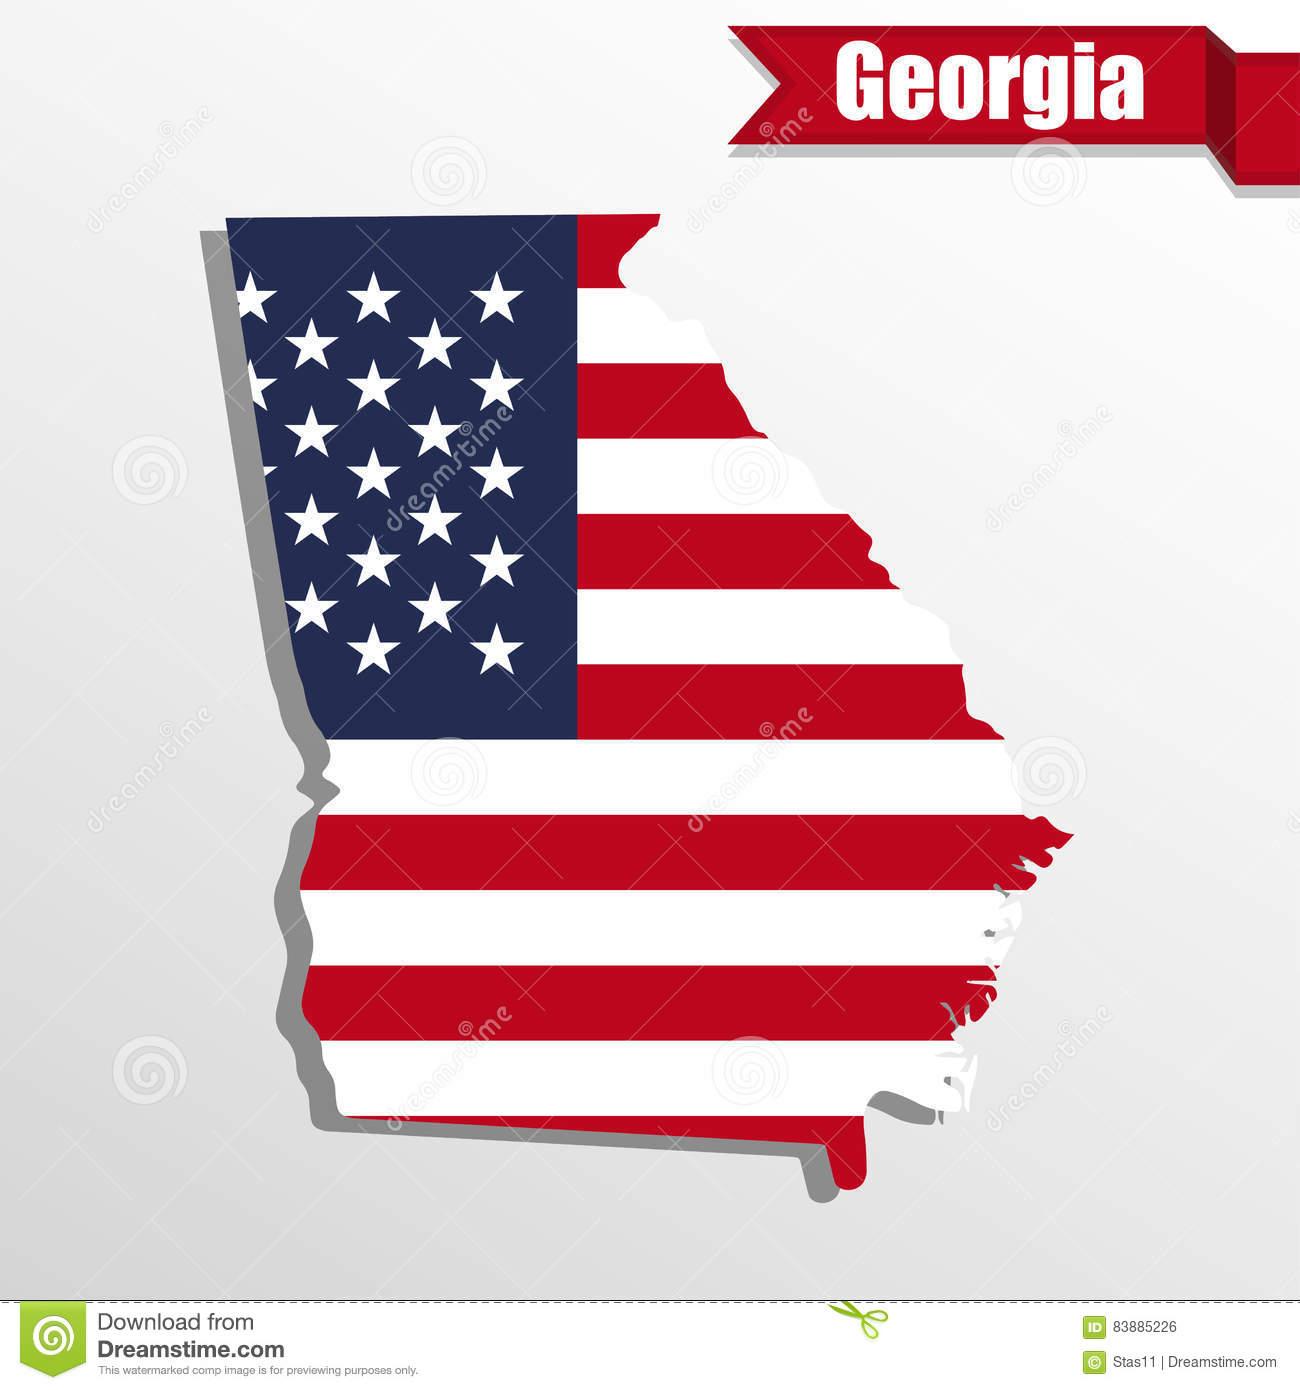 Georgia State Maps USA Maps Of Georgia GA Georgia Maps - Us state map ga